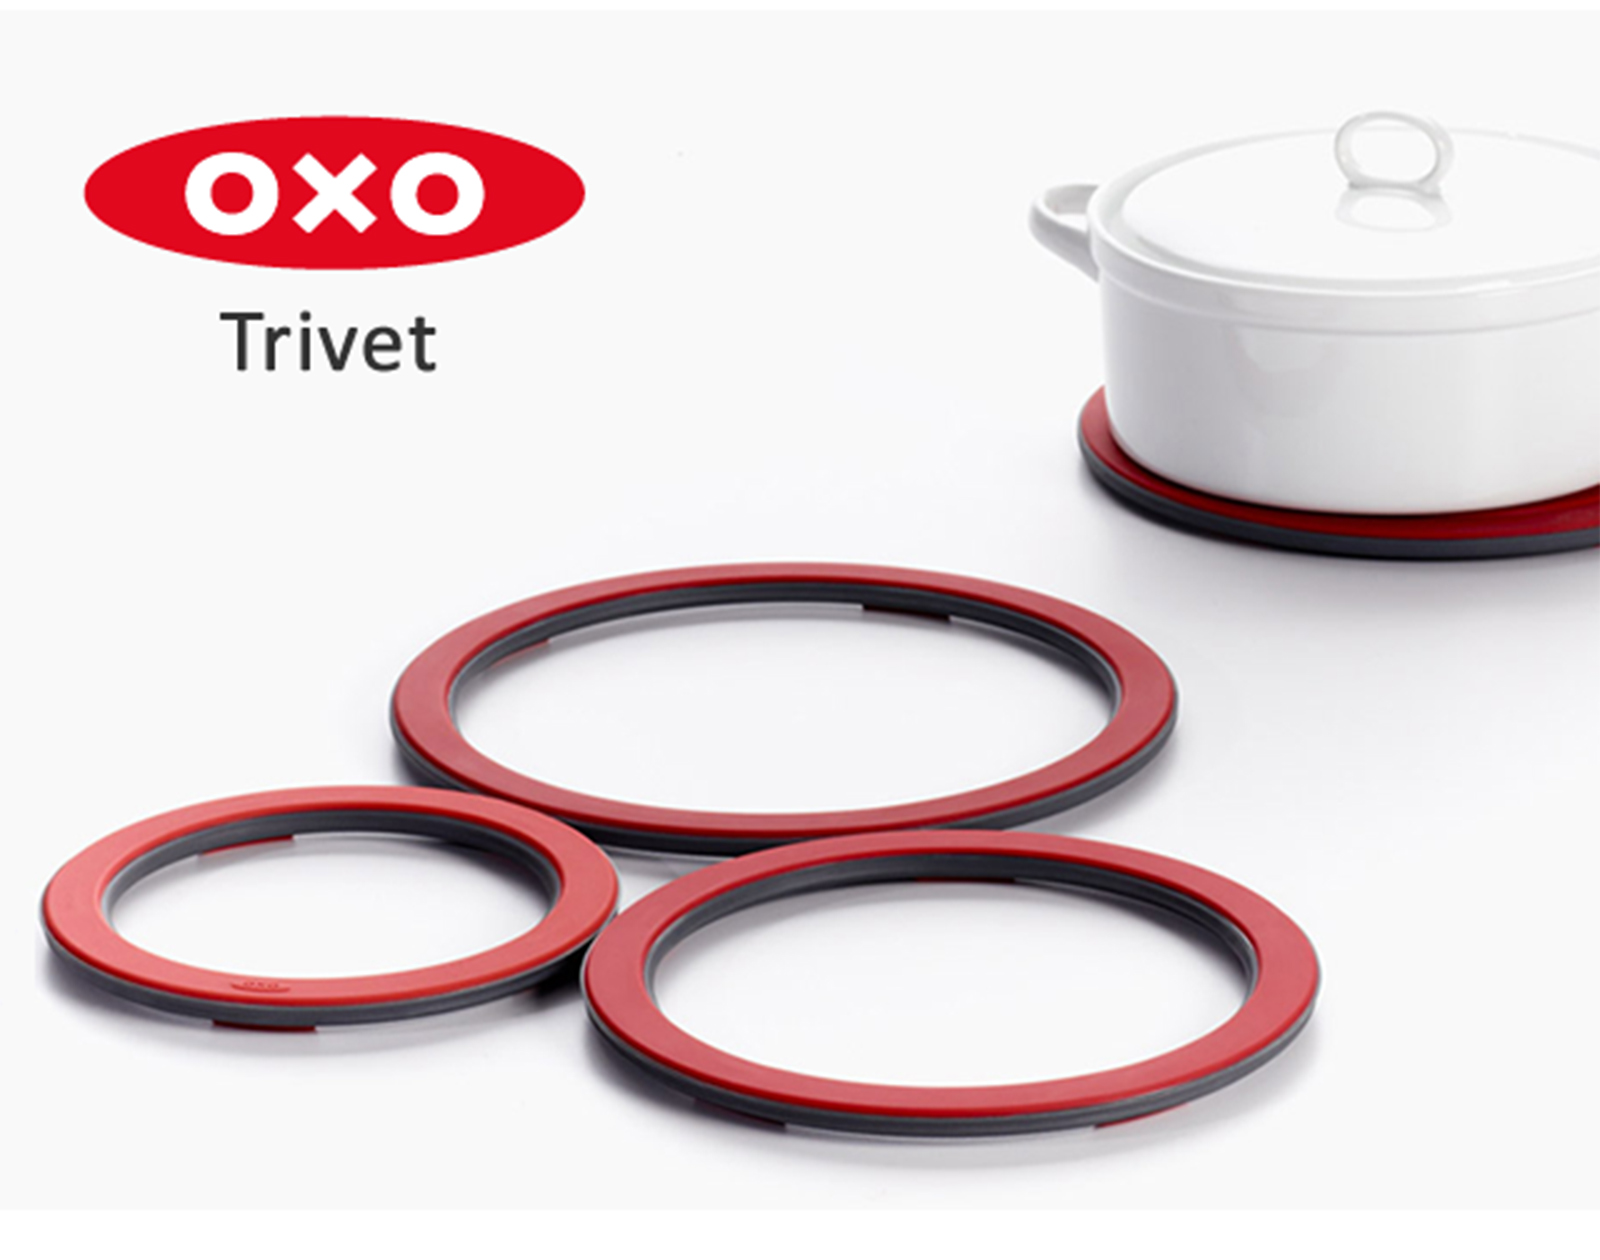 OXO 3リングトリベットセット 13109900